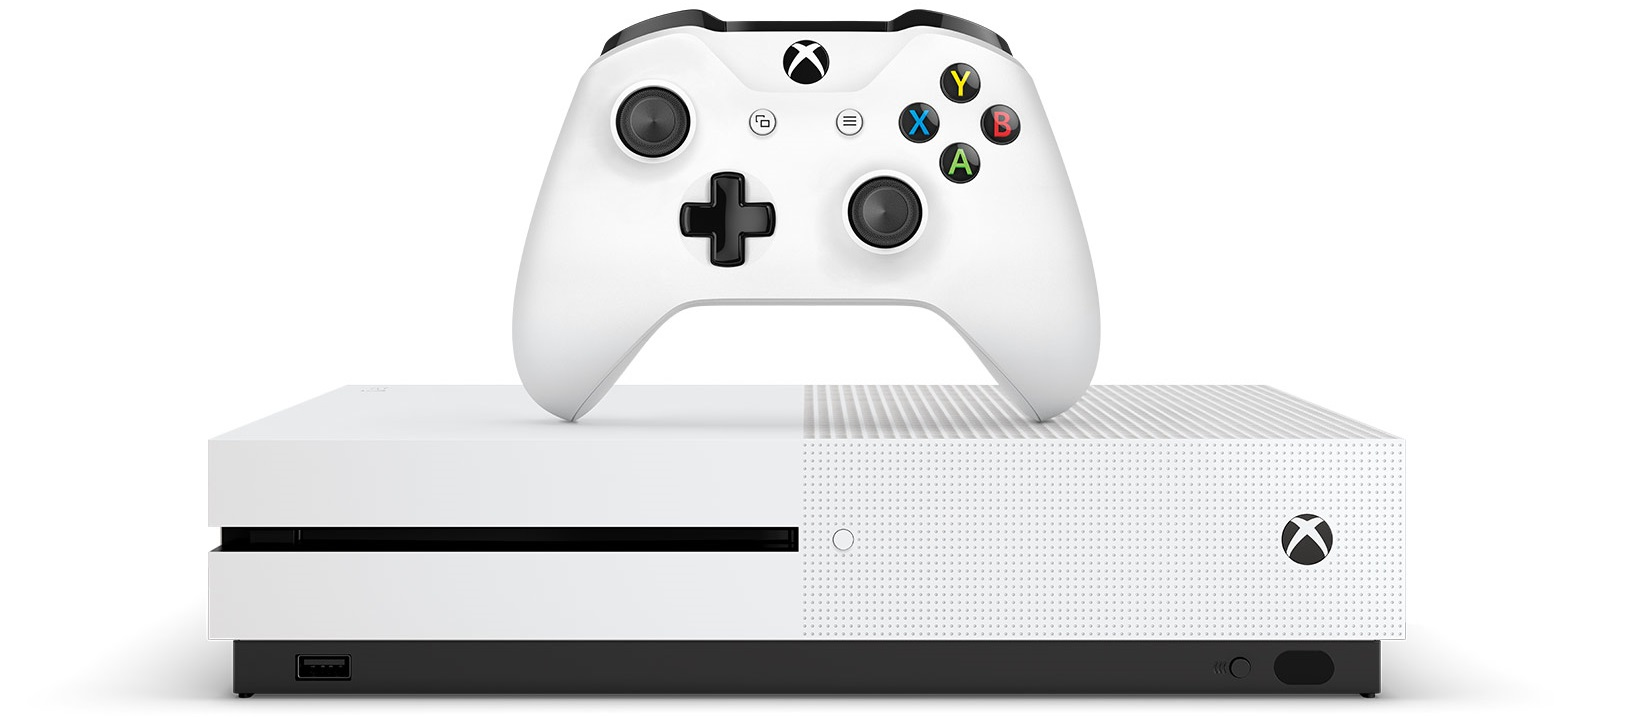 image of the Xbox One and controller